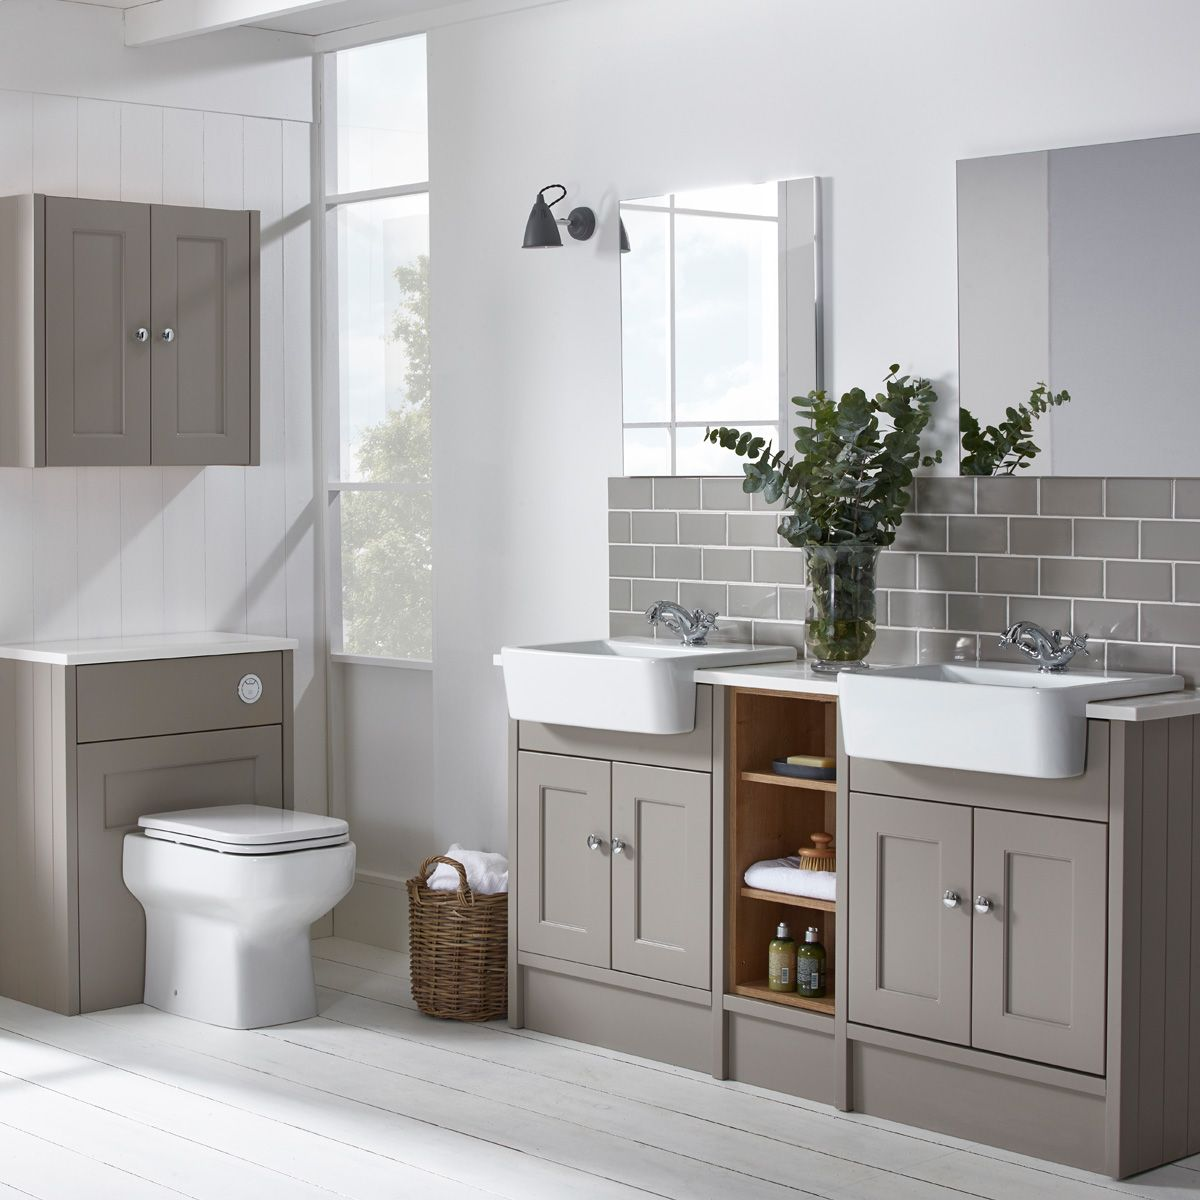 Roper Rhodes Burford Mocha His And Hers Fitted Bathroom Fitted